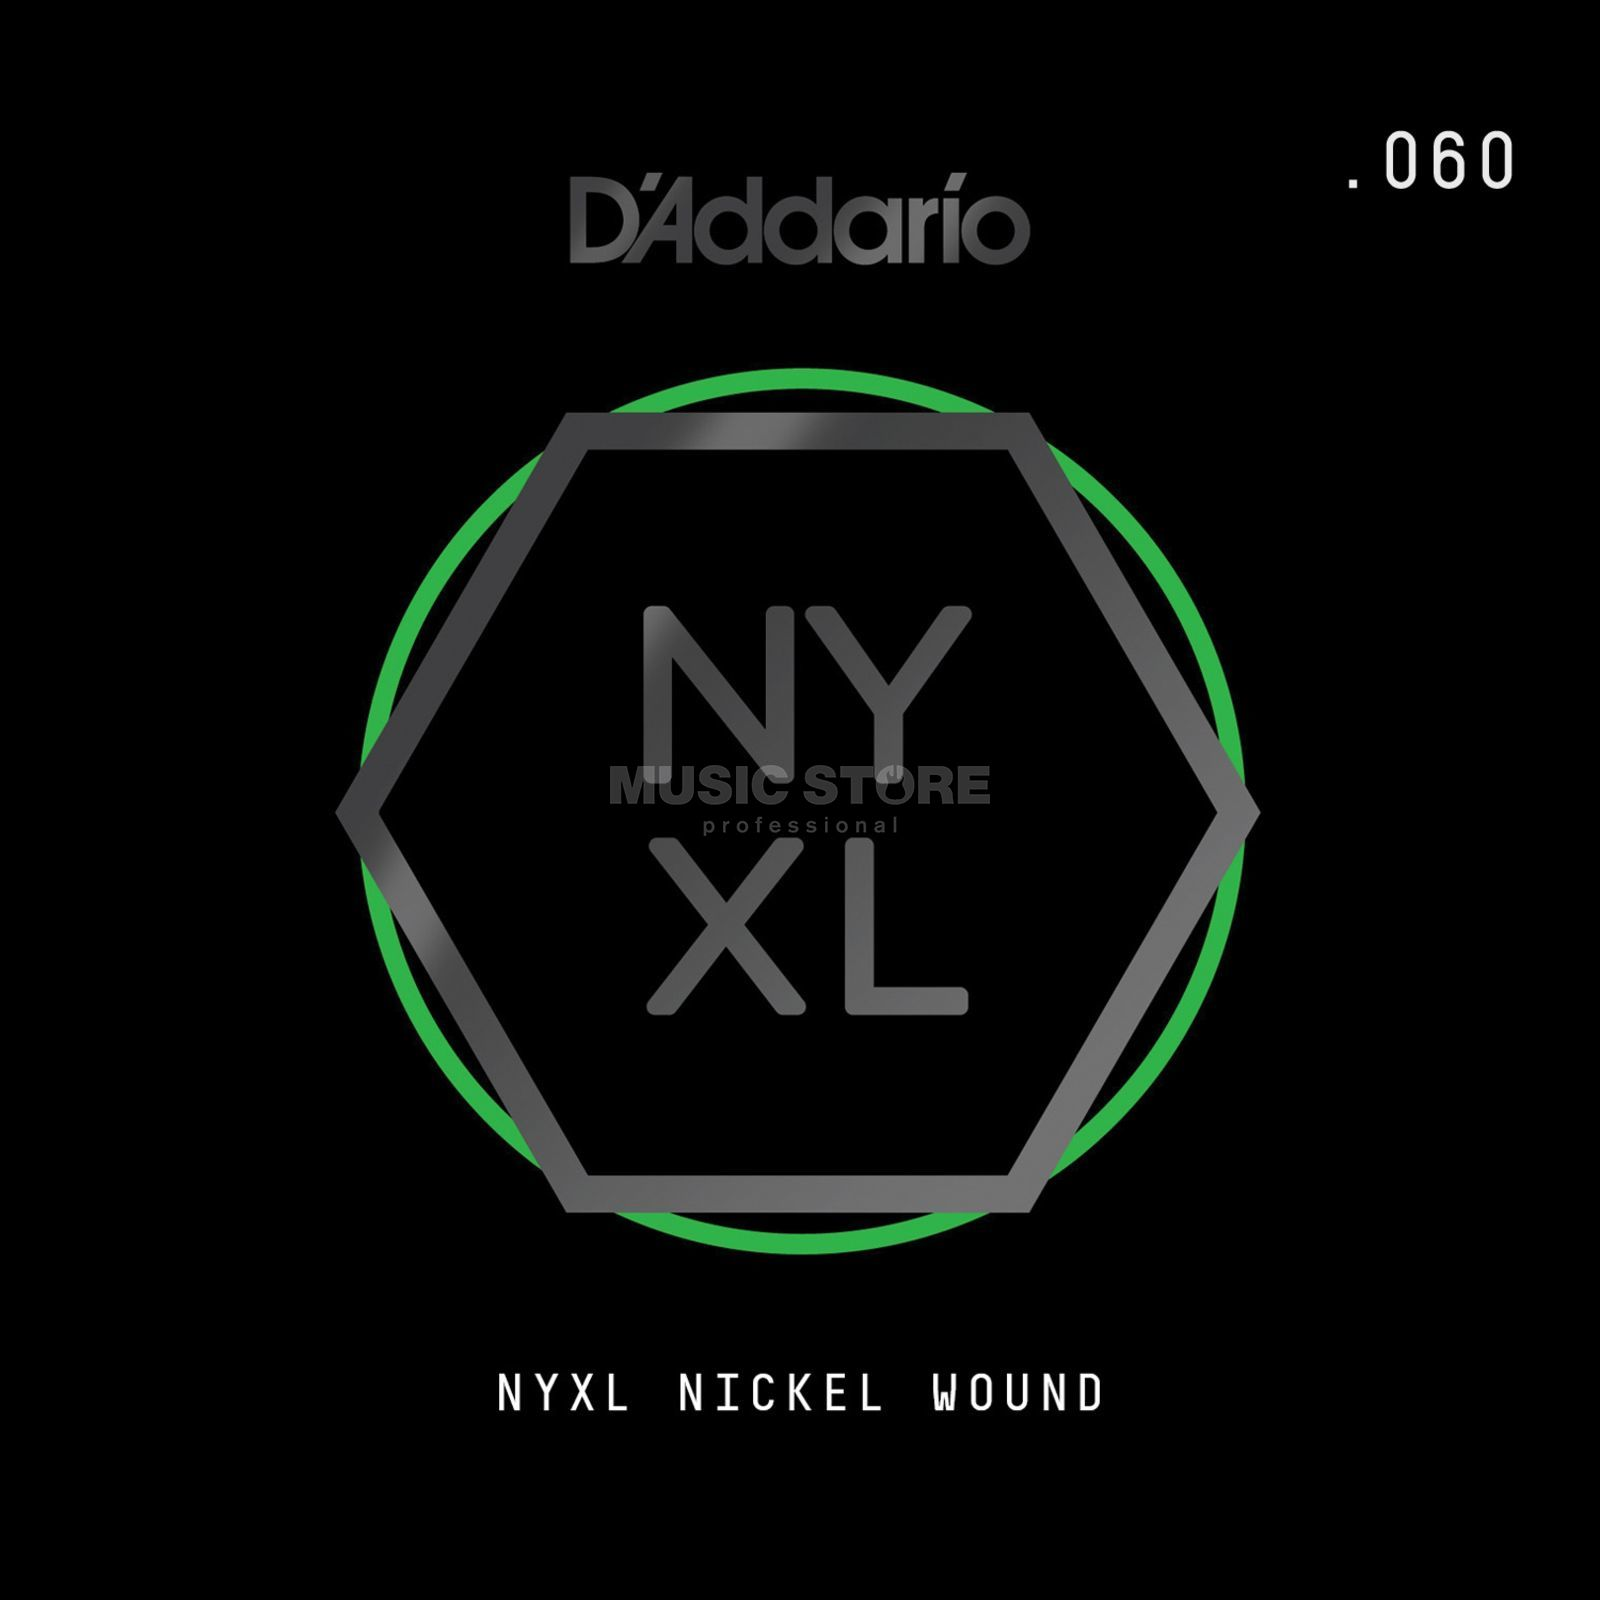 D'Addario NYNW060 Single String Nickel Wound Imagem do produto